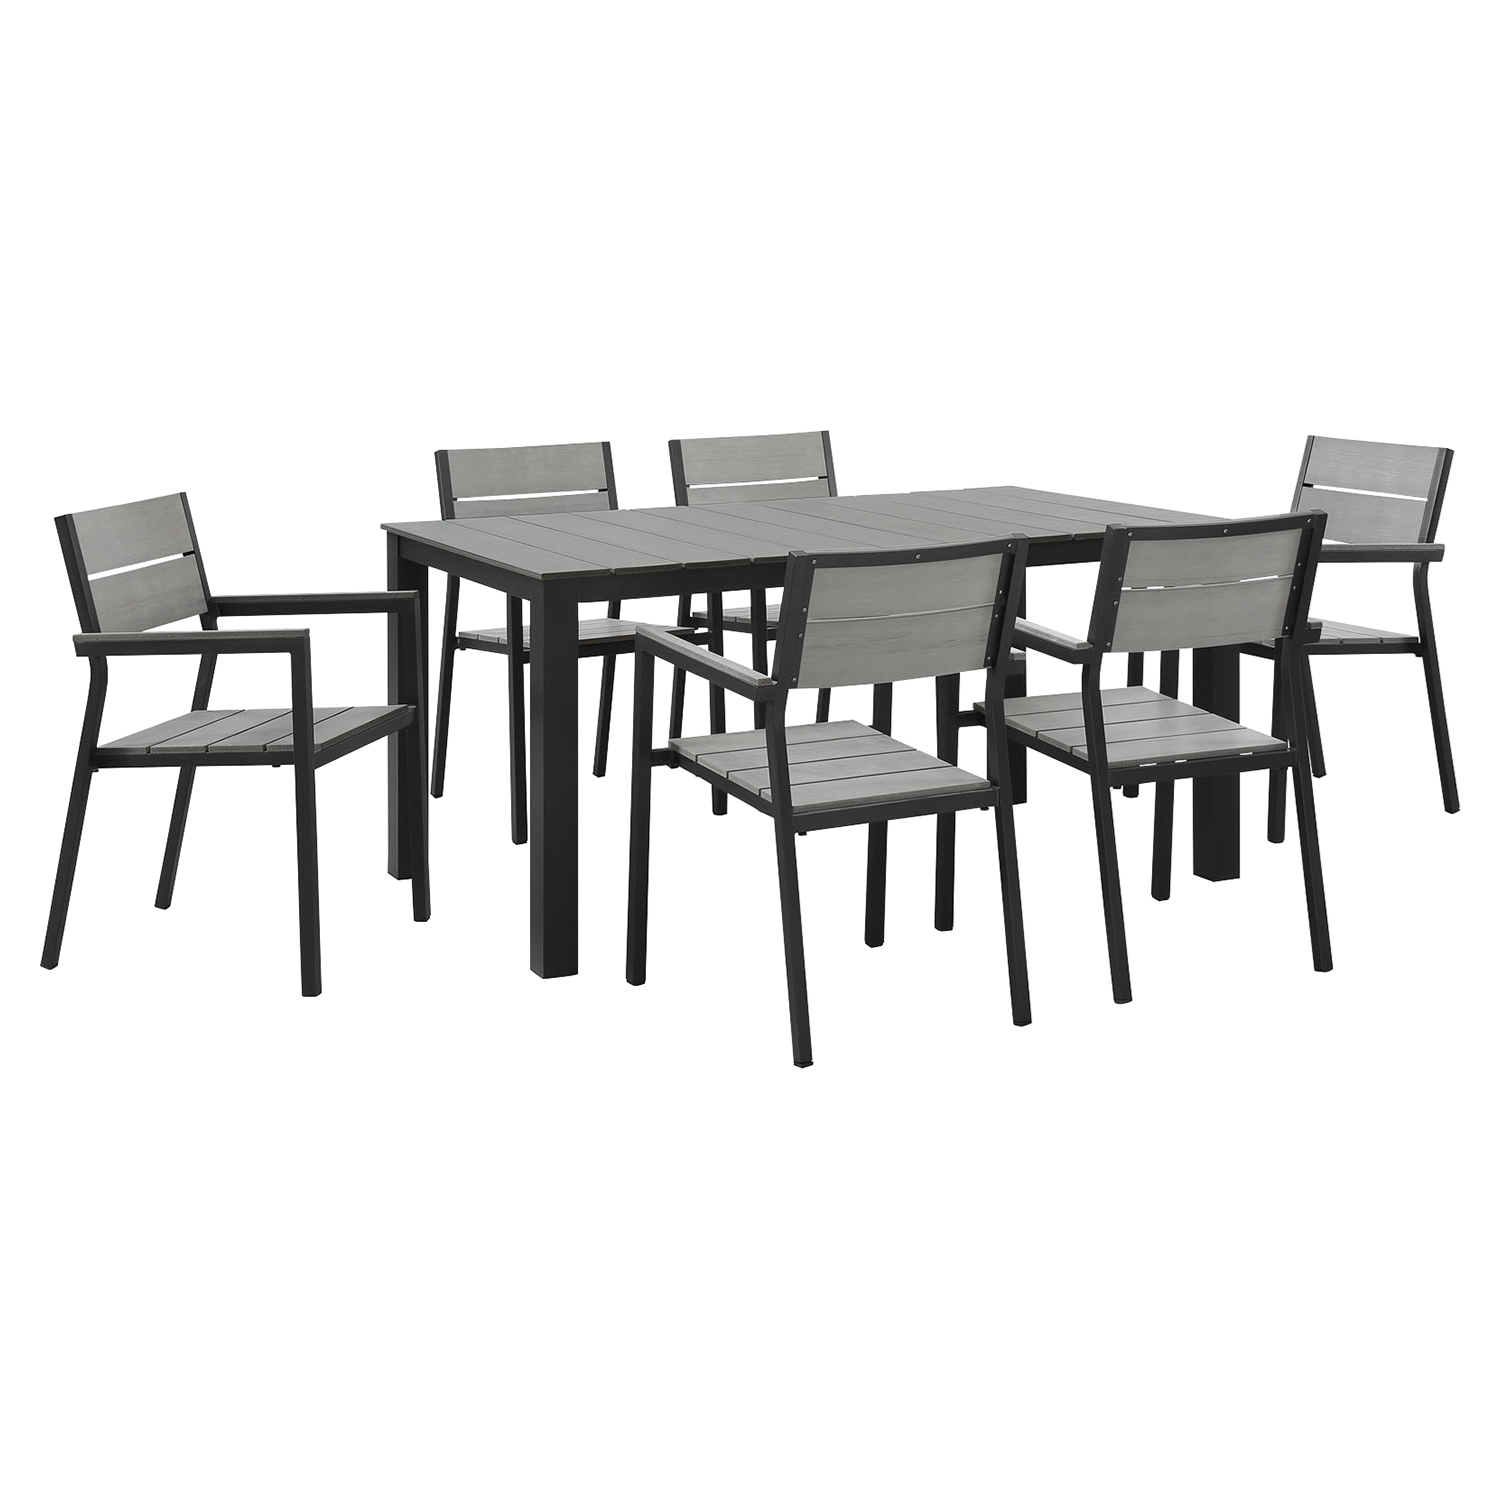 "Maine 7 Pieces 63"" Outdoor Patio Set - Brown, Gray - EEI-1749-BRN-GRY-SET"